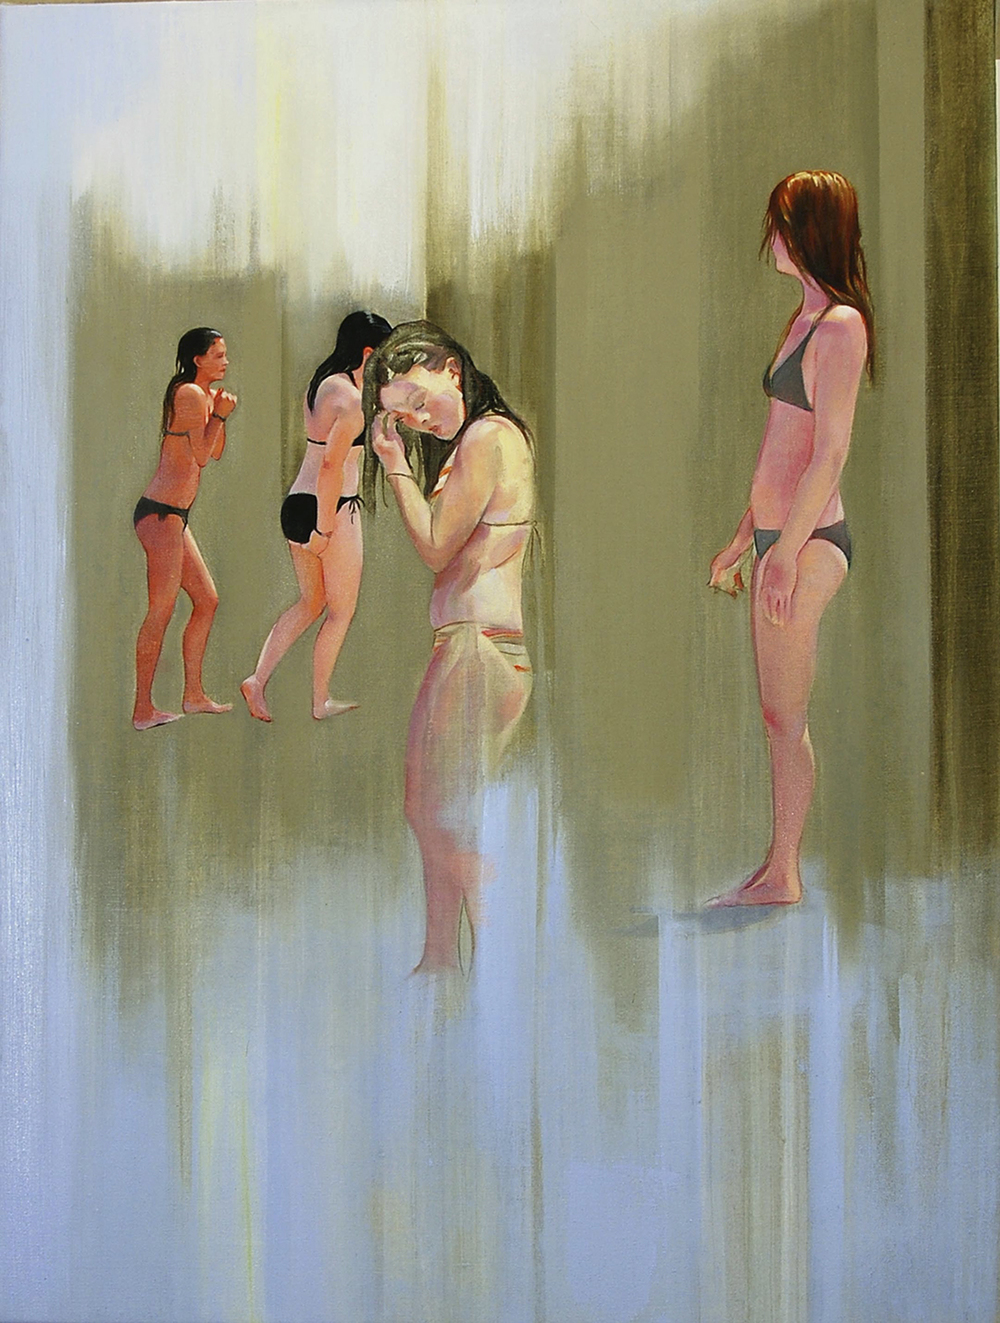 Bathers oil on linen 32x24, 2009